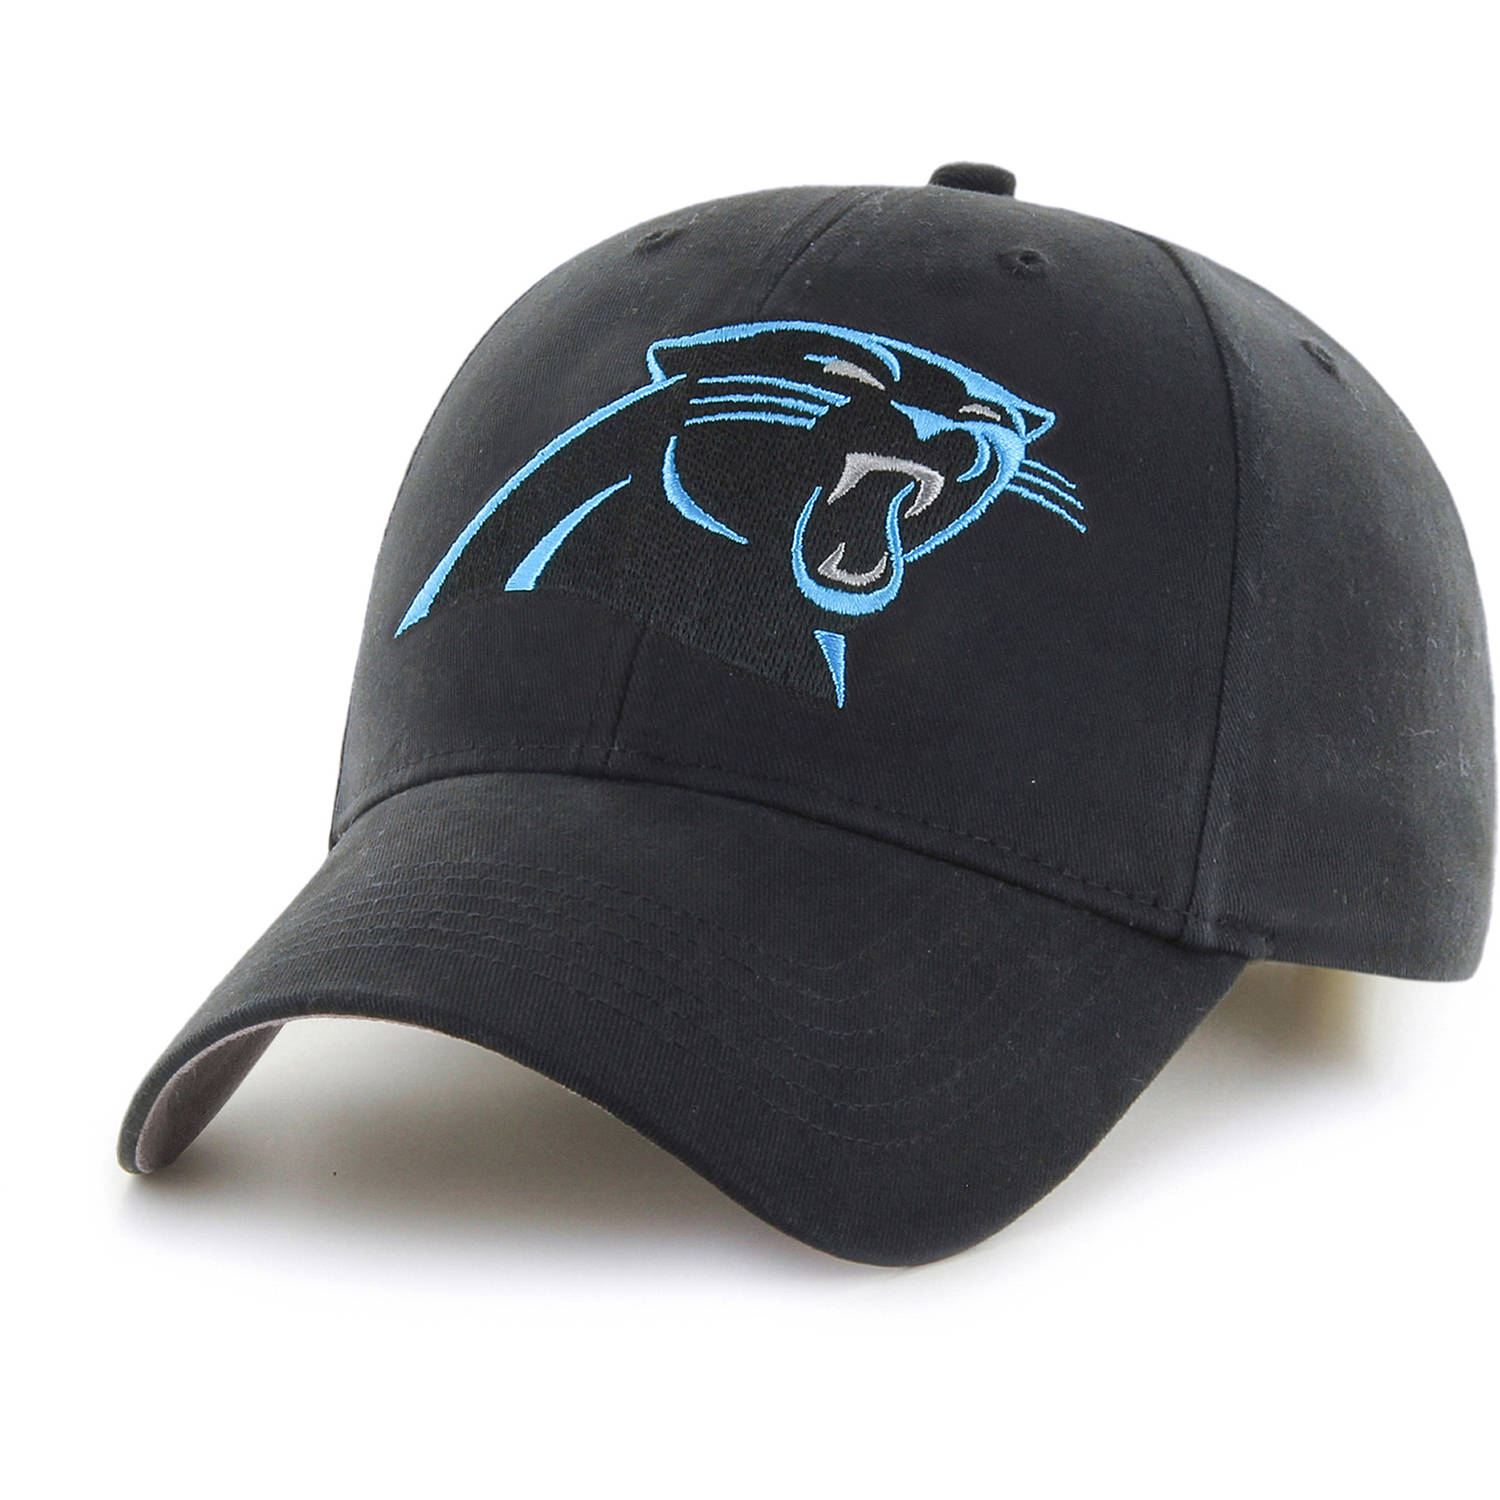 NFL Carolina Panthers Basic Cap/Hat by Fan Favorite